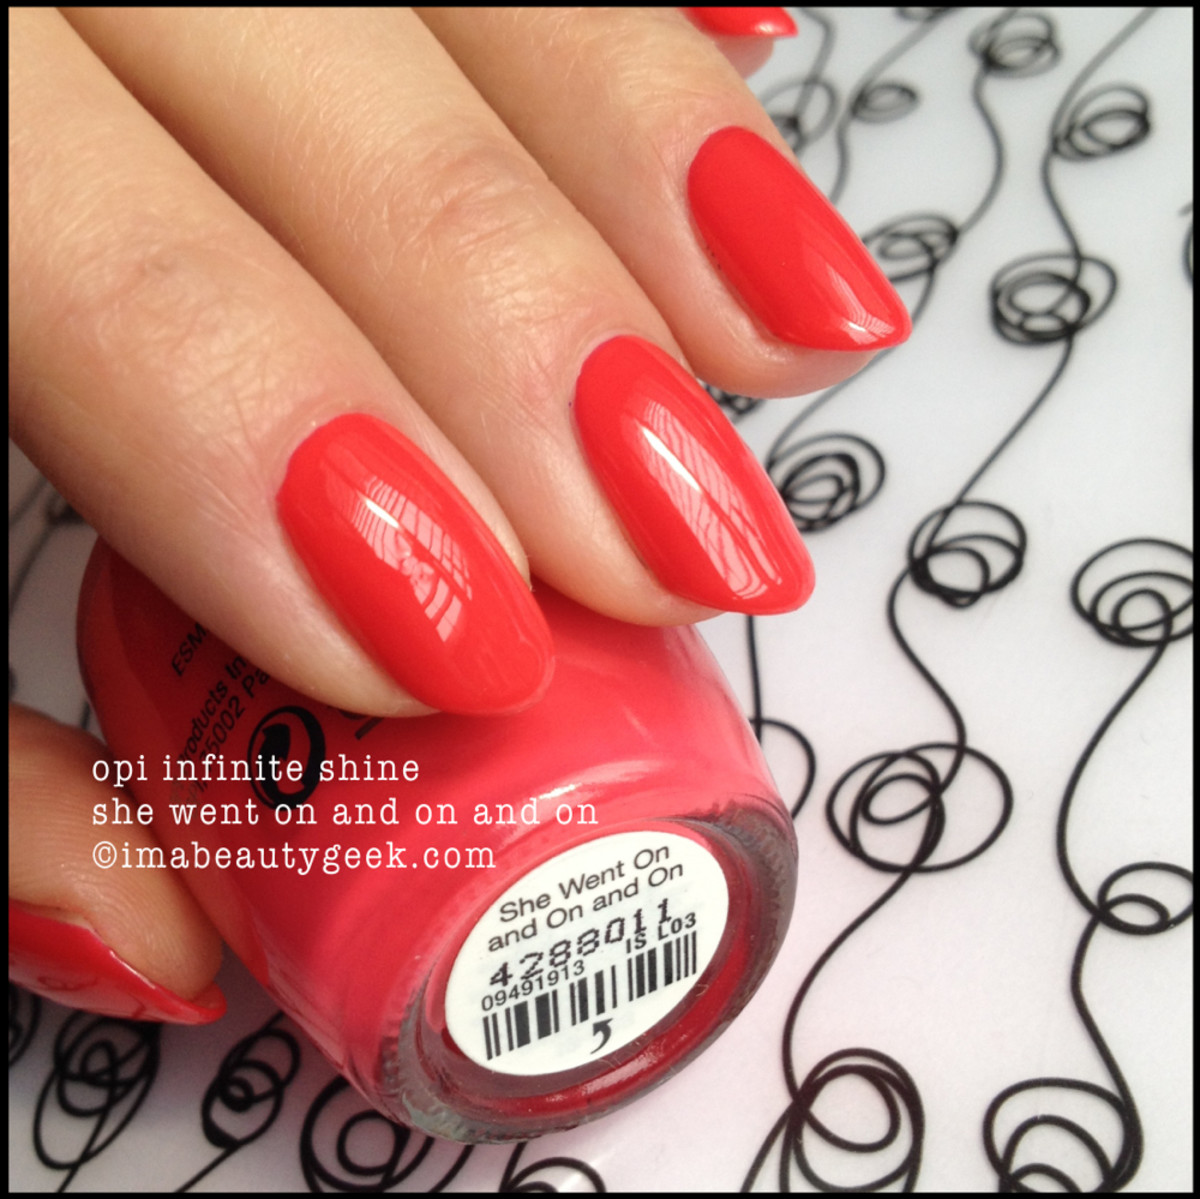 OPI She Went On and On and On Inifinite Shine Launch